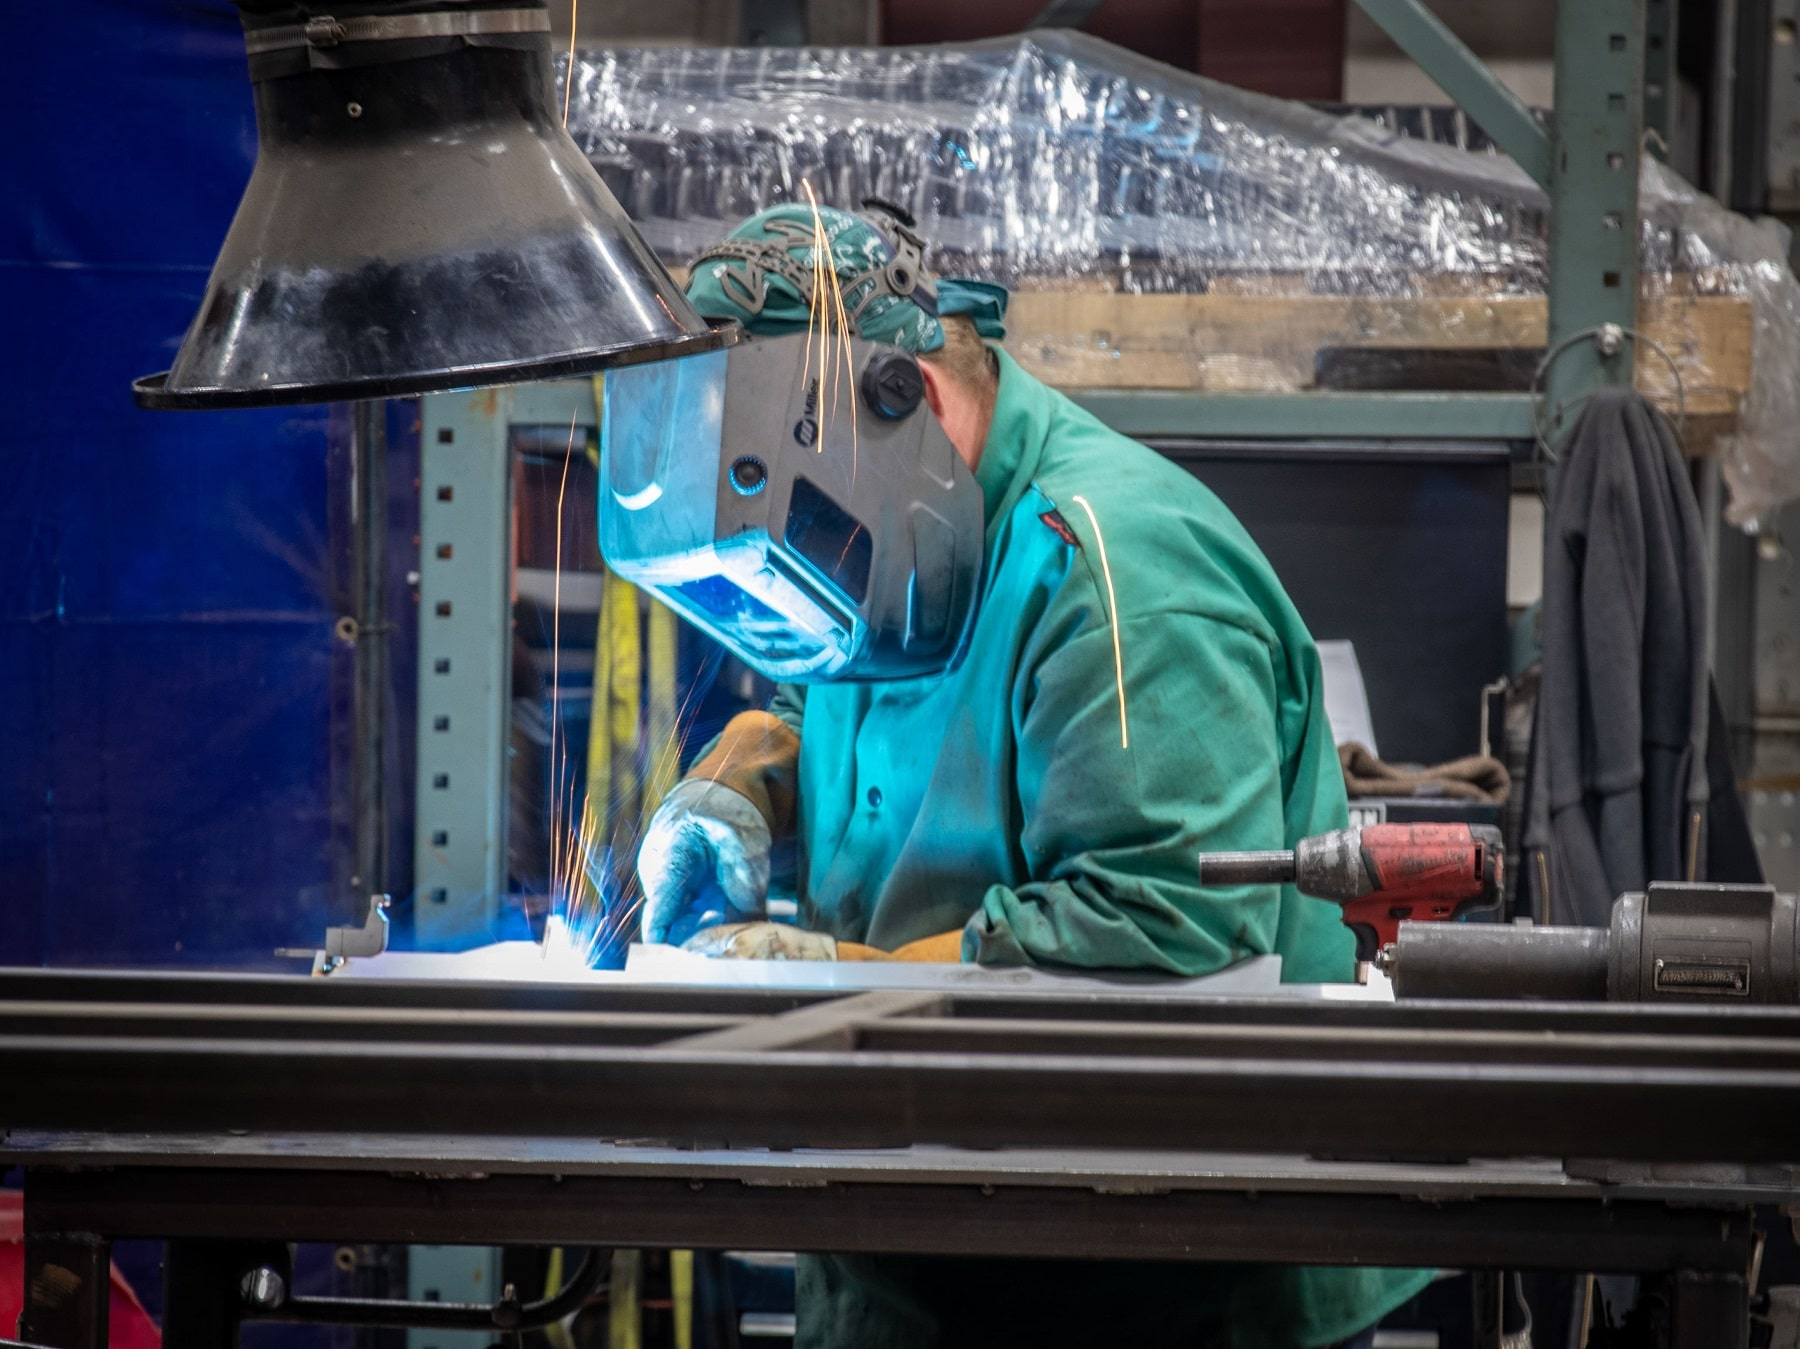 welder at work in steel green manufacturing facility